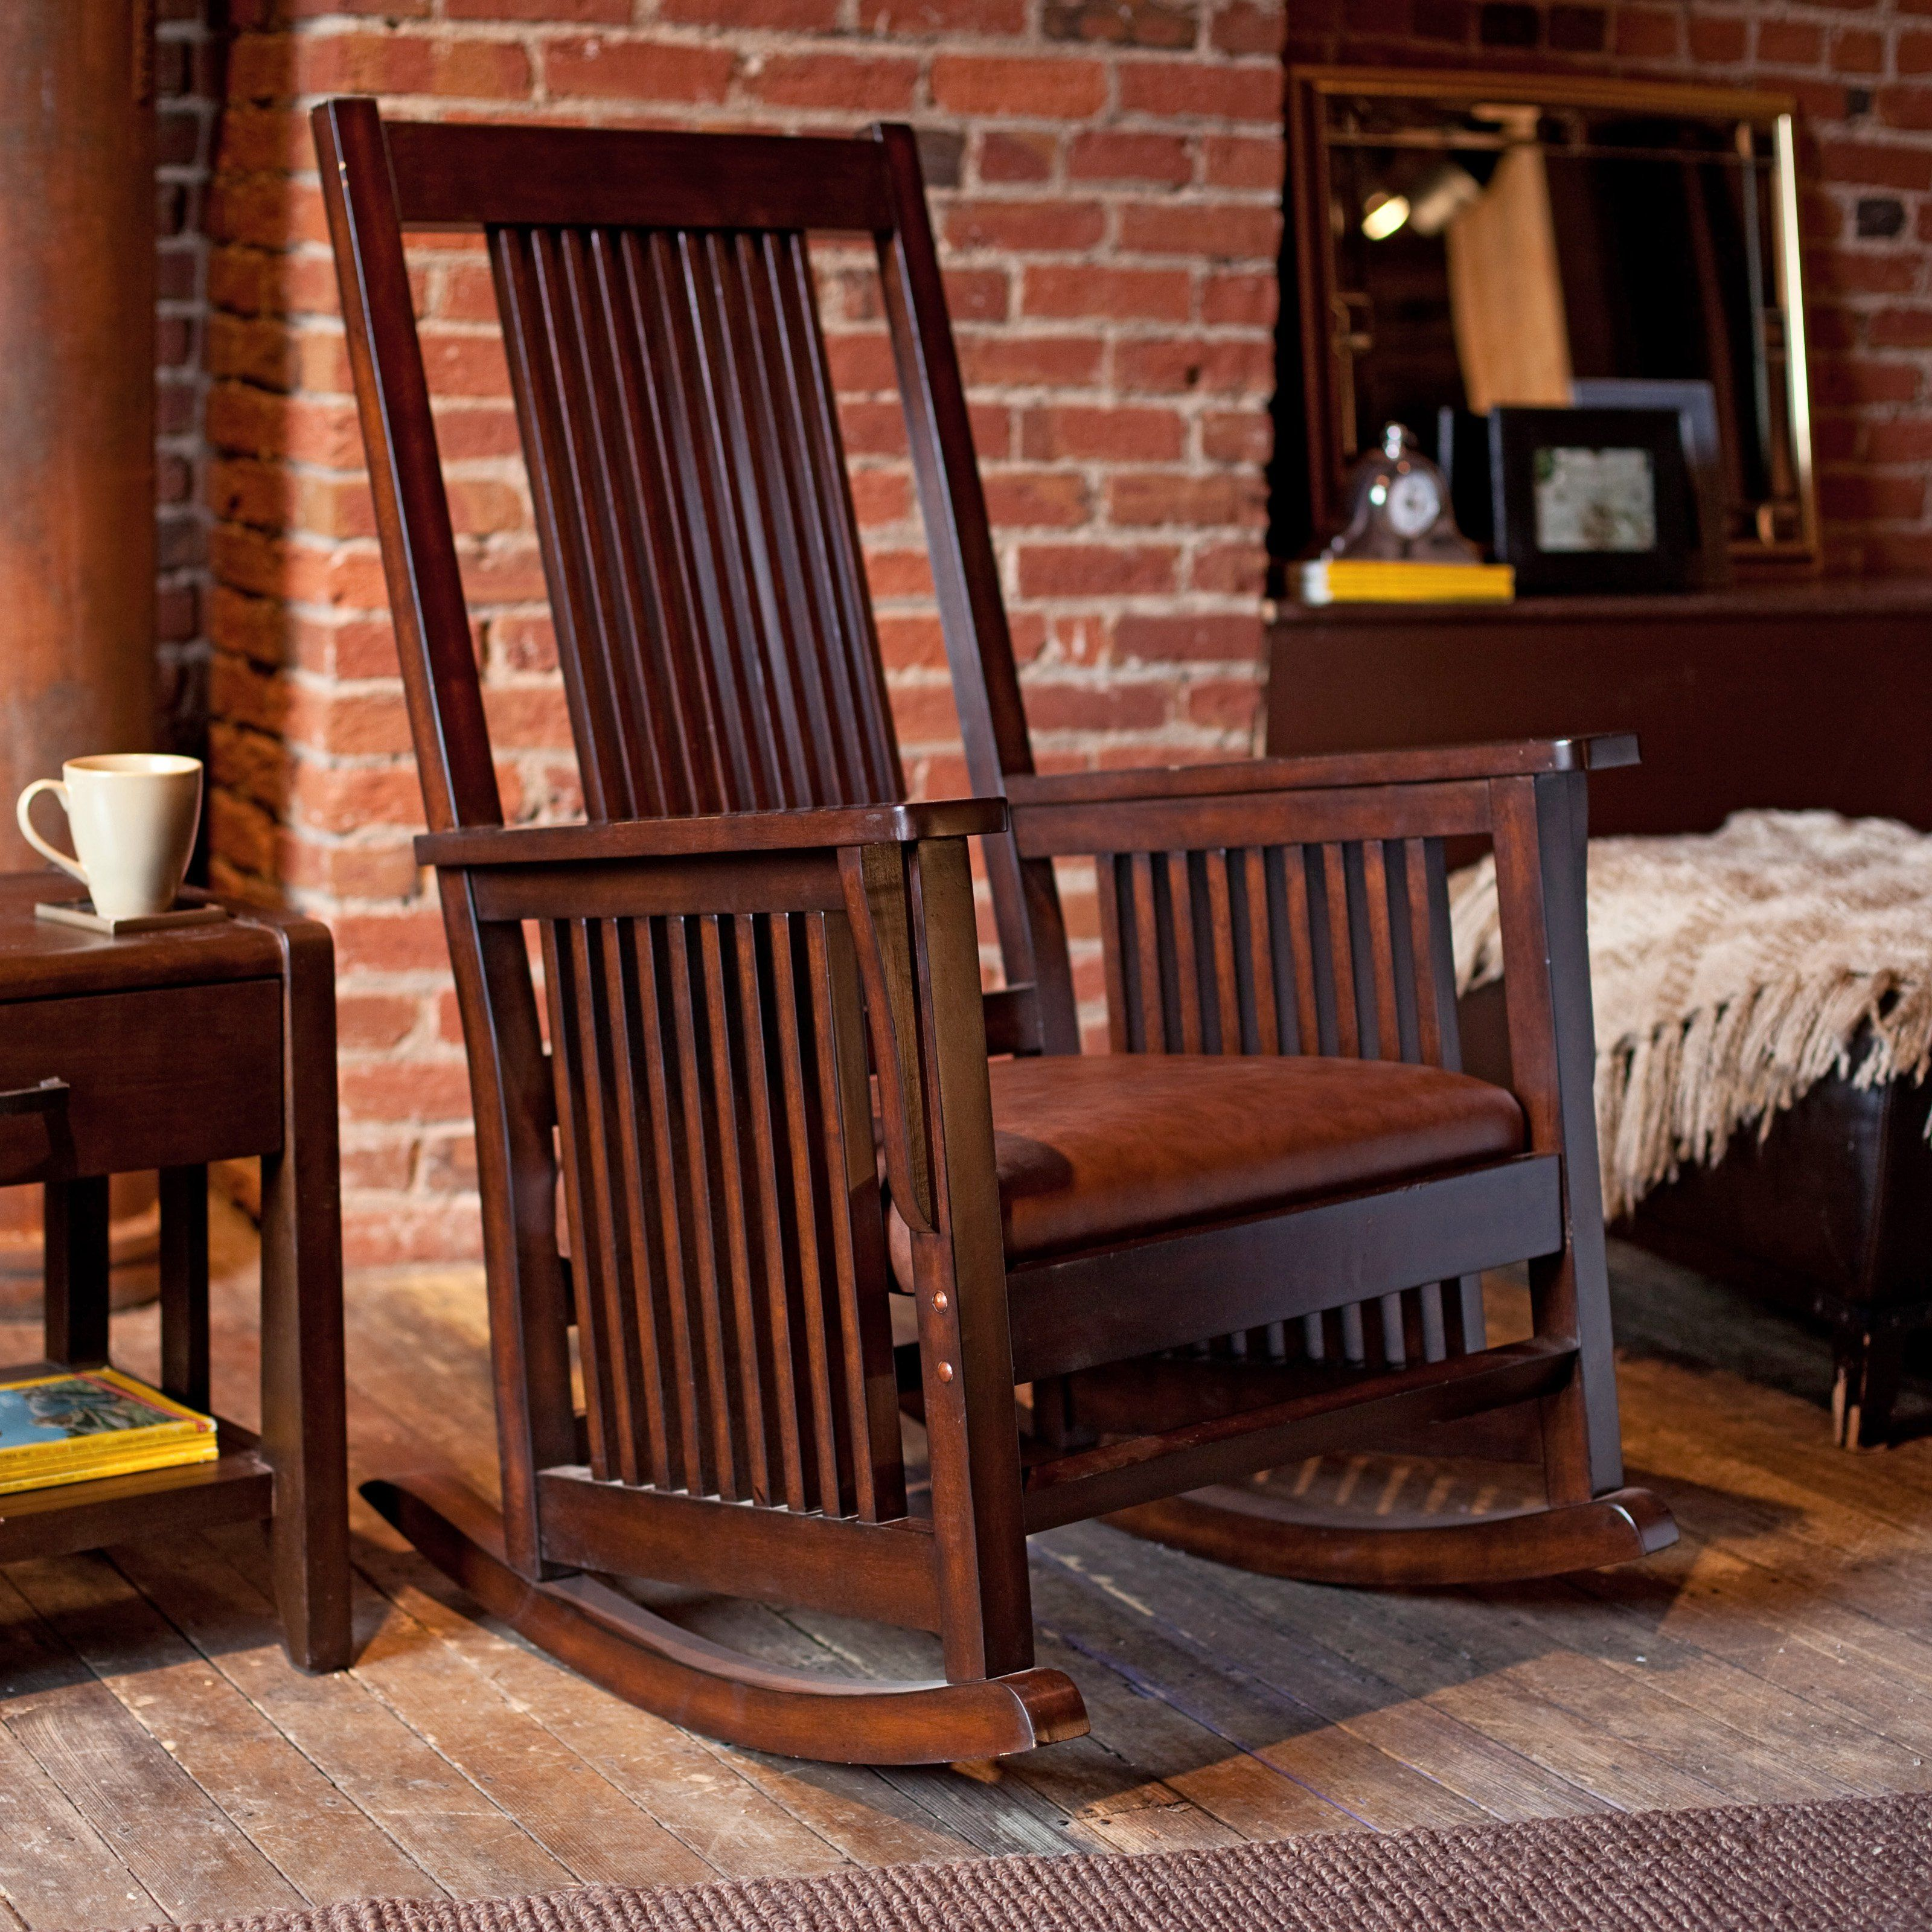 Belham Living Province Mission Rocker Walnut This Chair Rocks With Its Timeless Mission Style The Province Mission Rocker Walnut Brings Classic